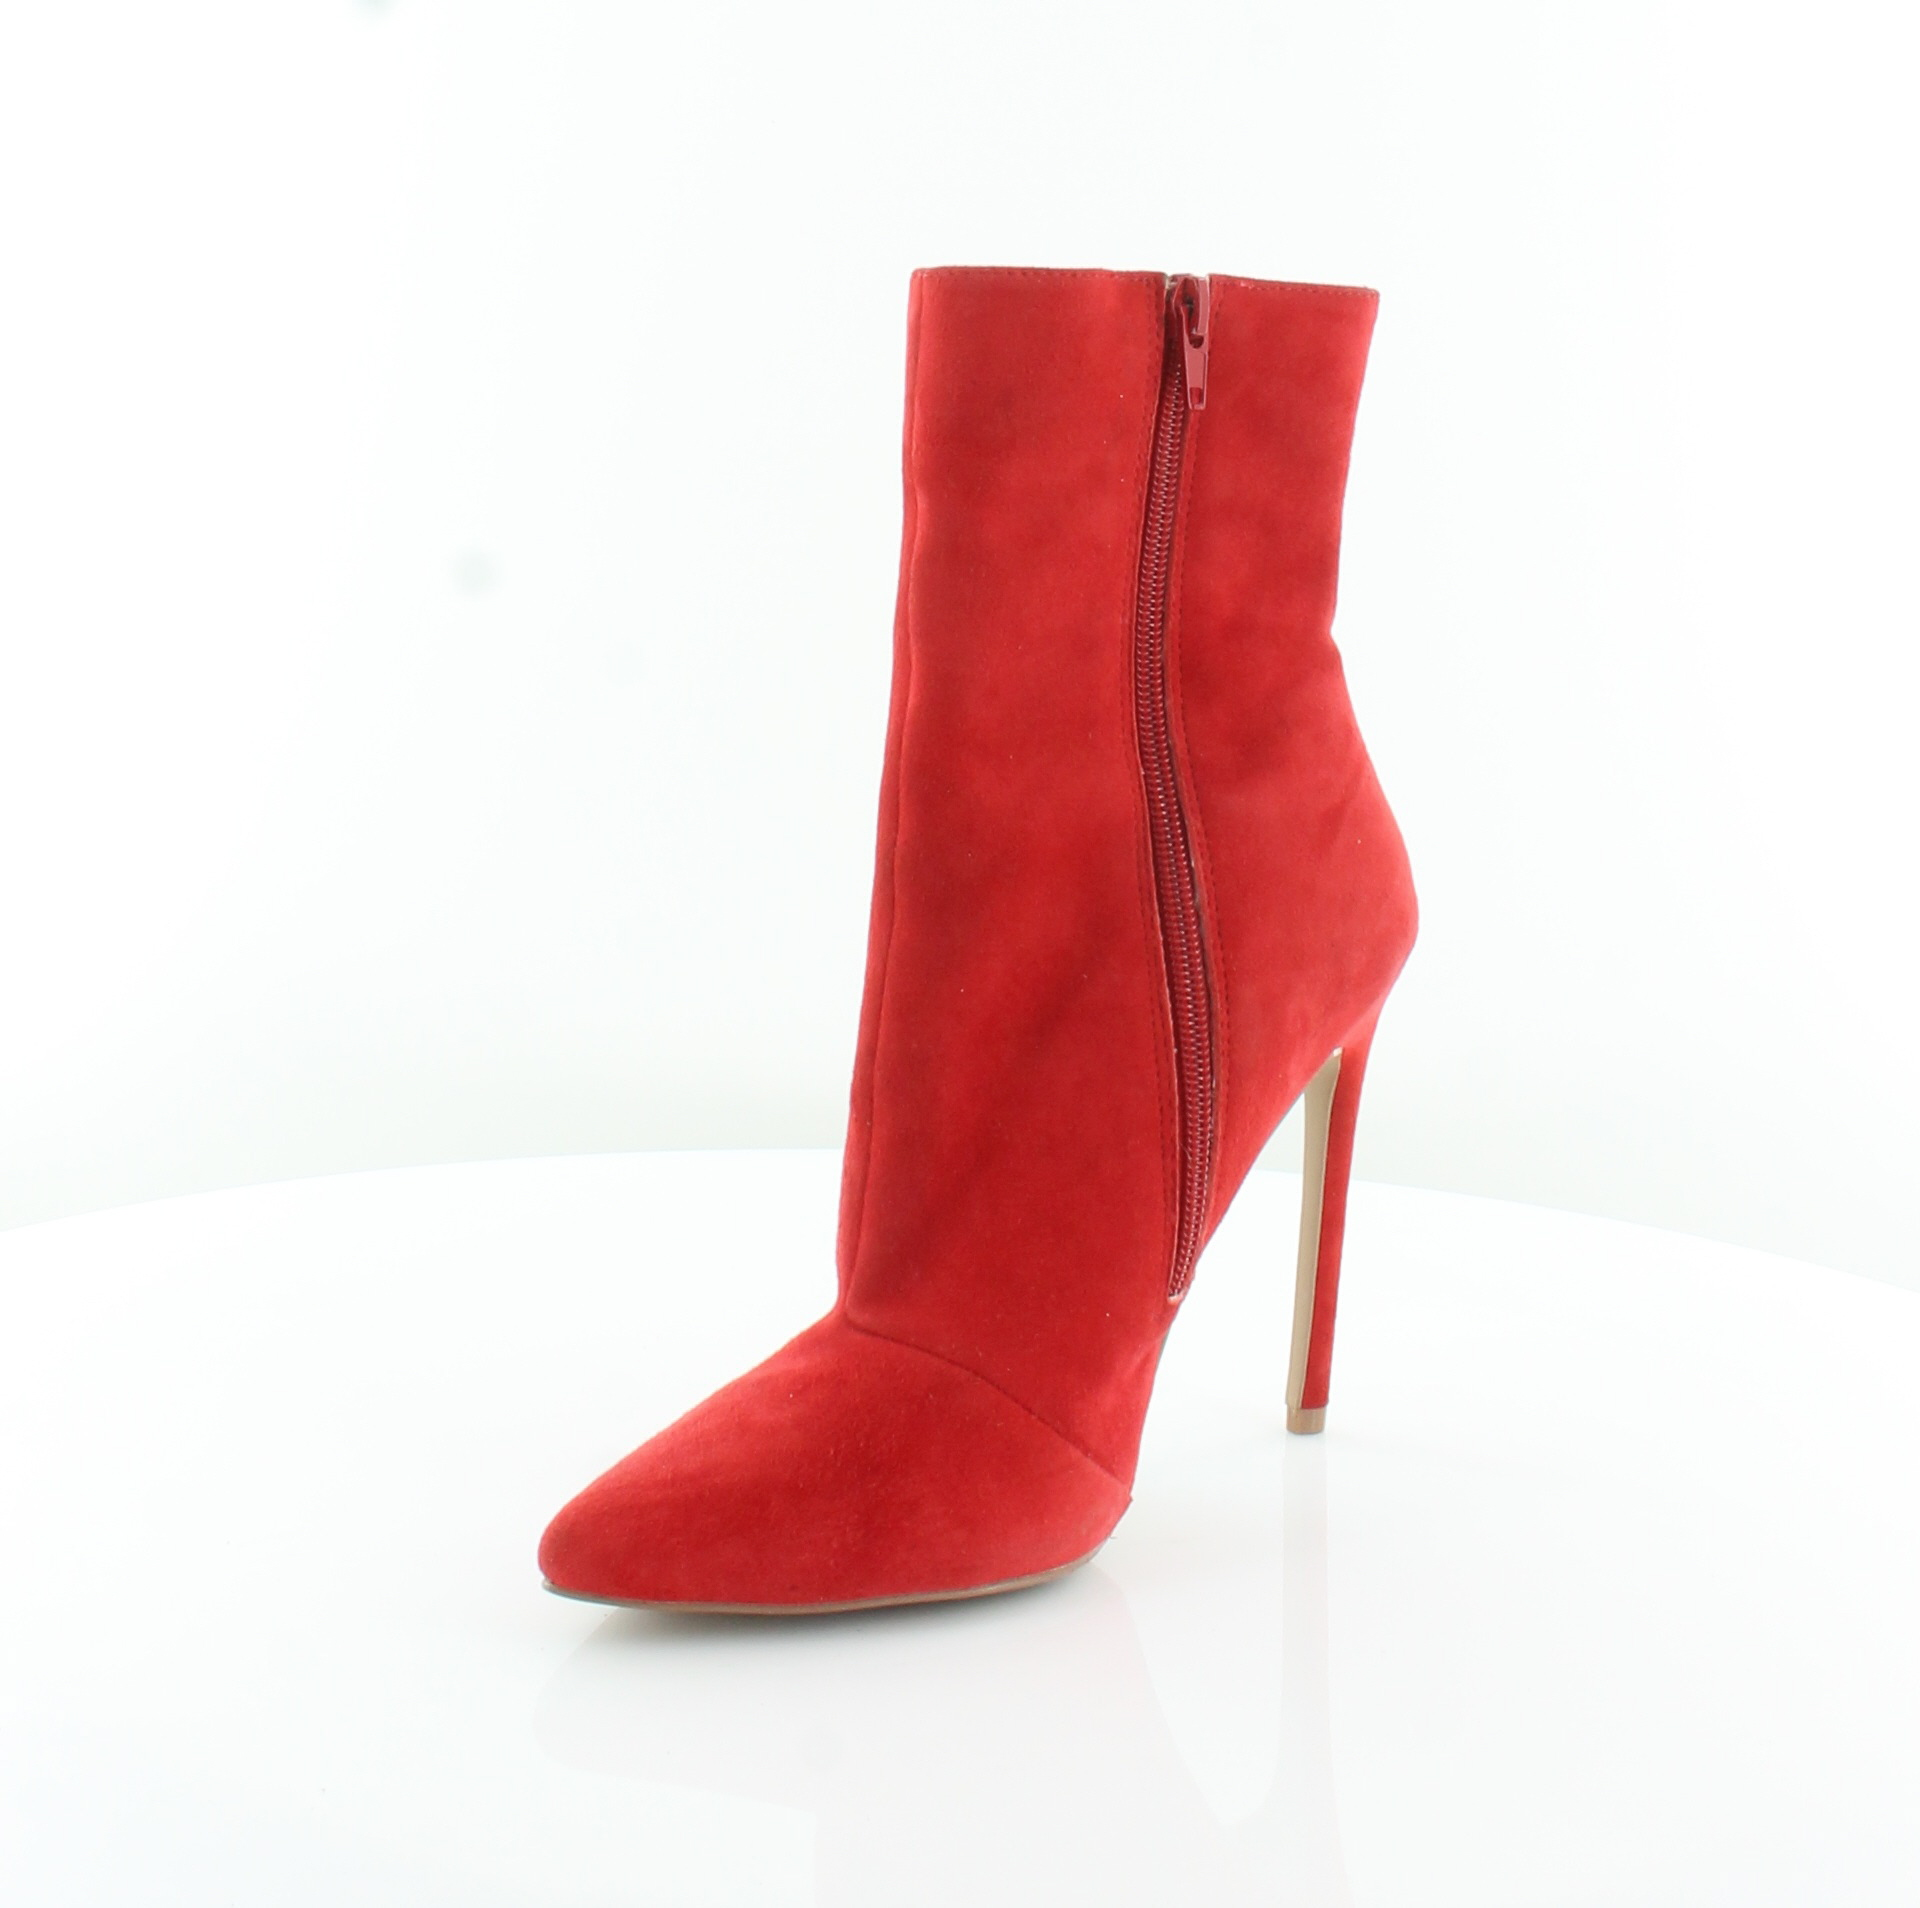 d8967bed70f STEVE MADDEN WAGNER Red Womens Shoes Size 8.5 M Boots MSRP $129